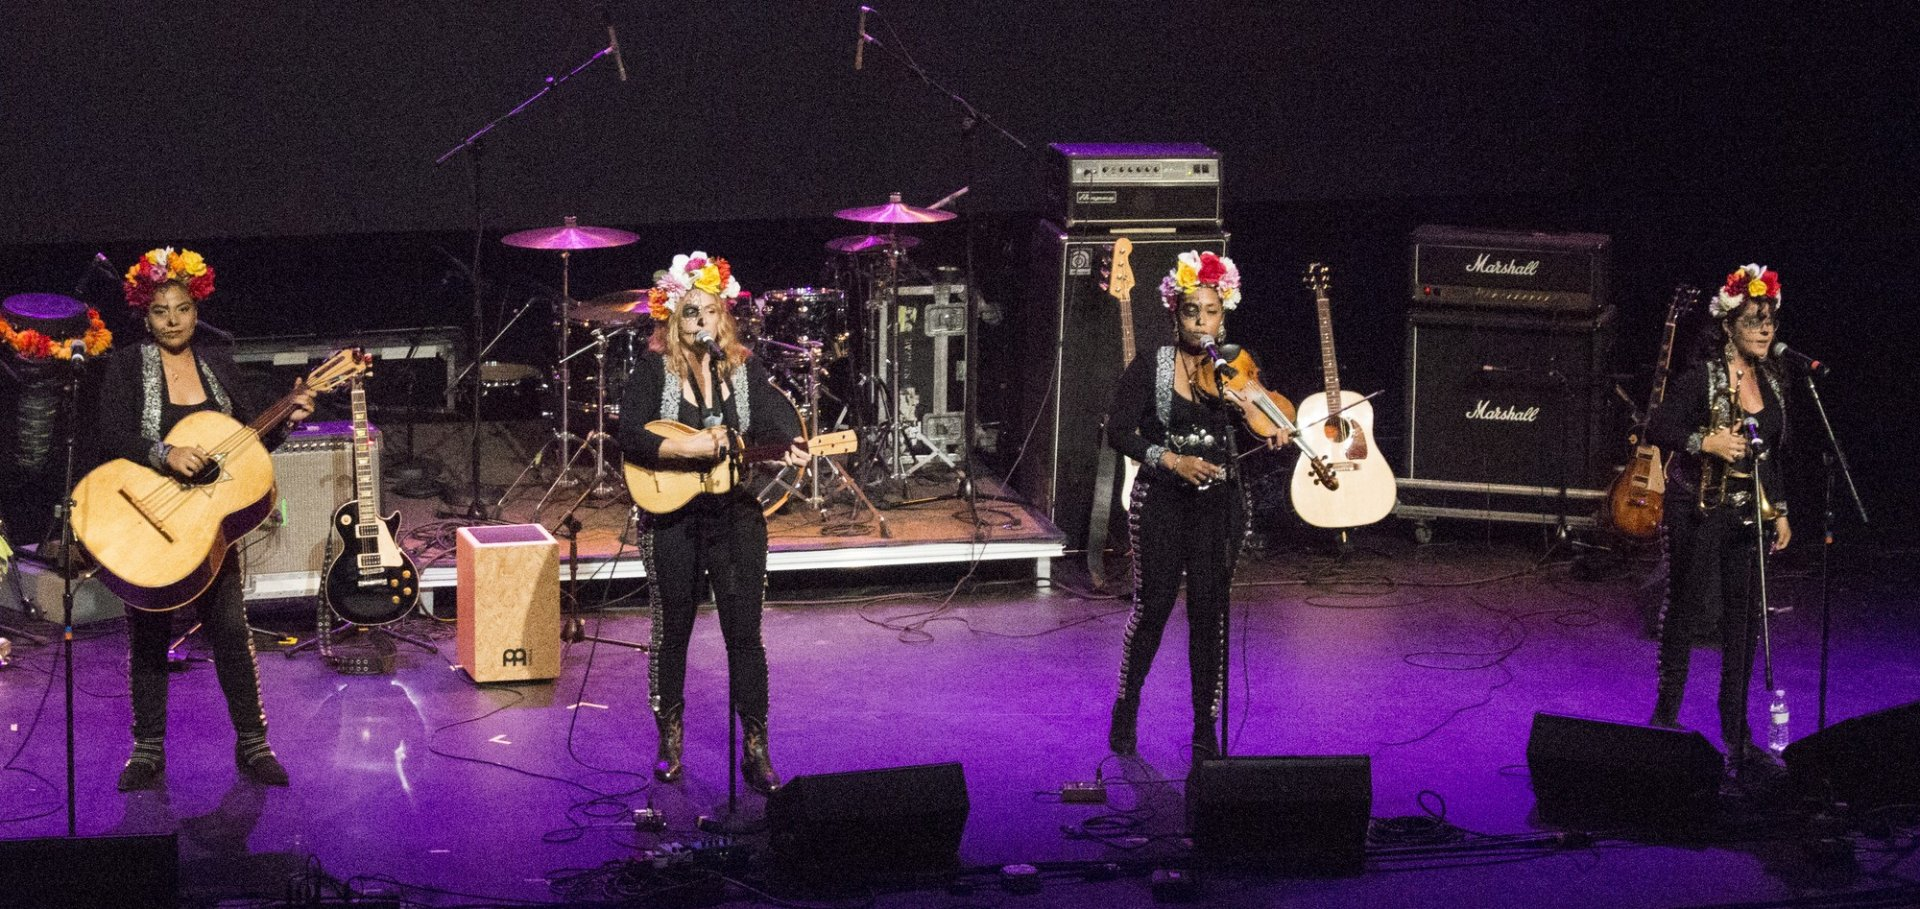 Mariachi de Toloache performing live at HSU's Van Duzer Theater on Monday, Oct. 30, 2017, as part of their Day Of The Dead Tour. Photo credit: Robert Brown